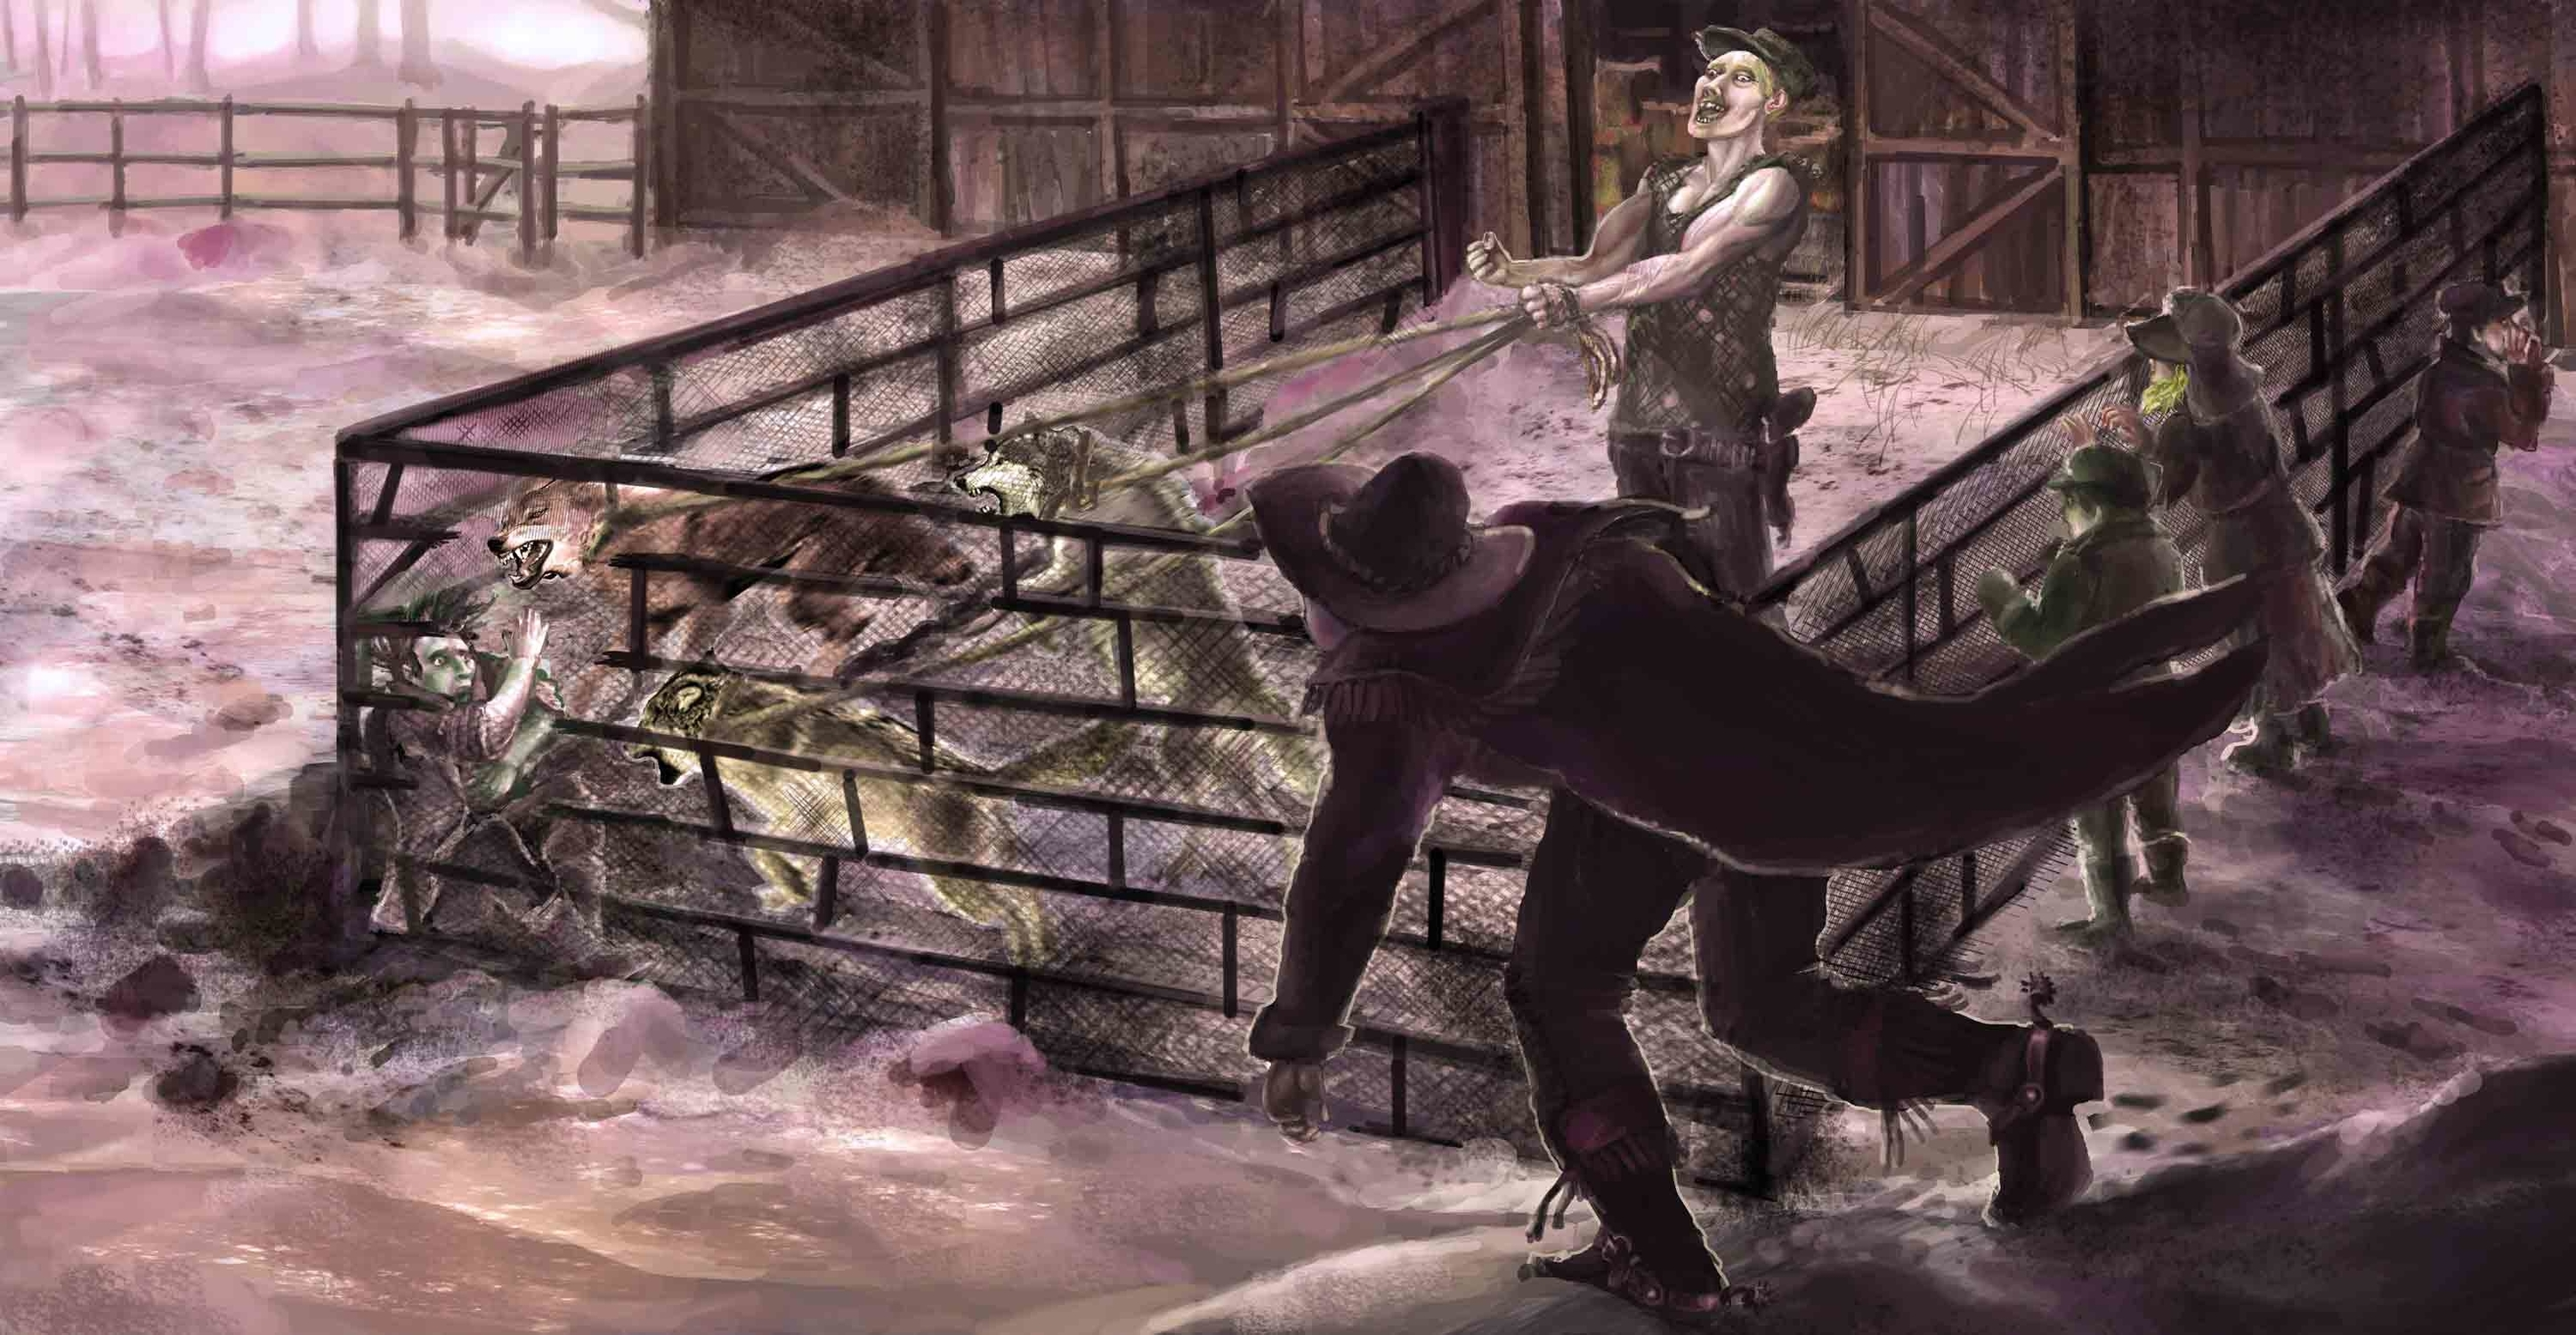 Charles assaulted by three rabid dog-wolves Artwork by Julien SEROR